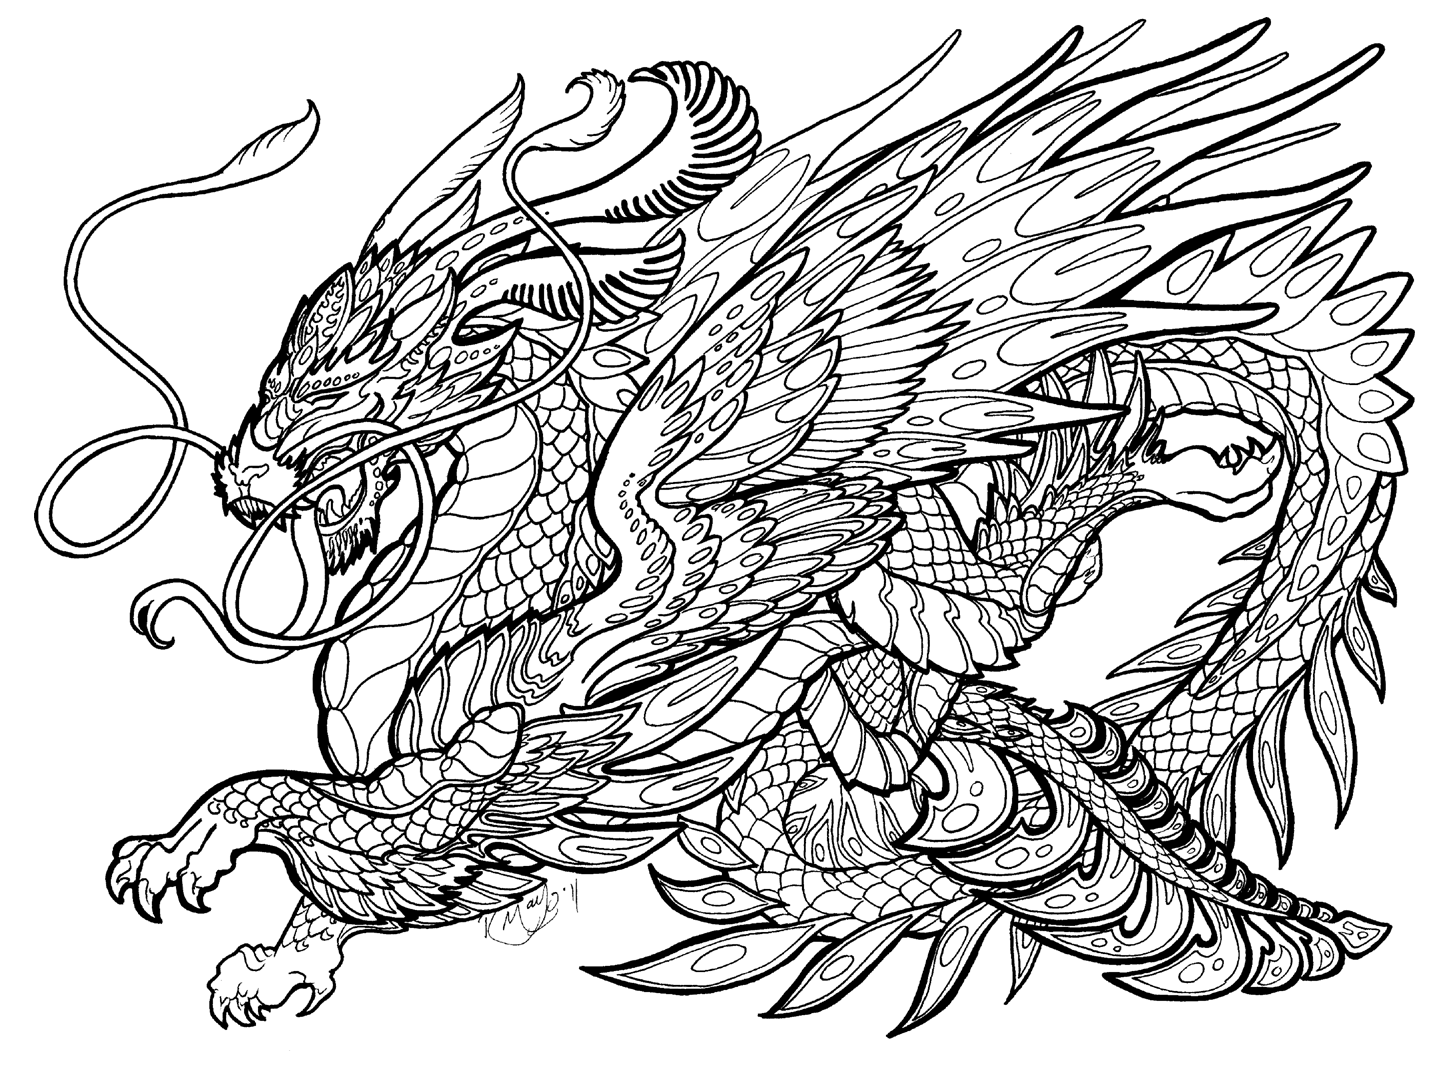 complex coloring pages of dragons - photo#25